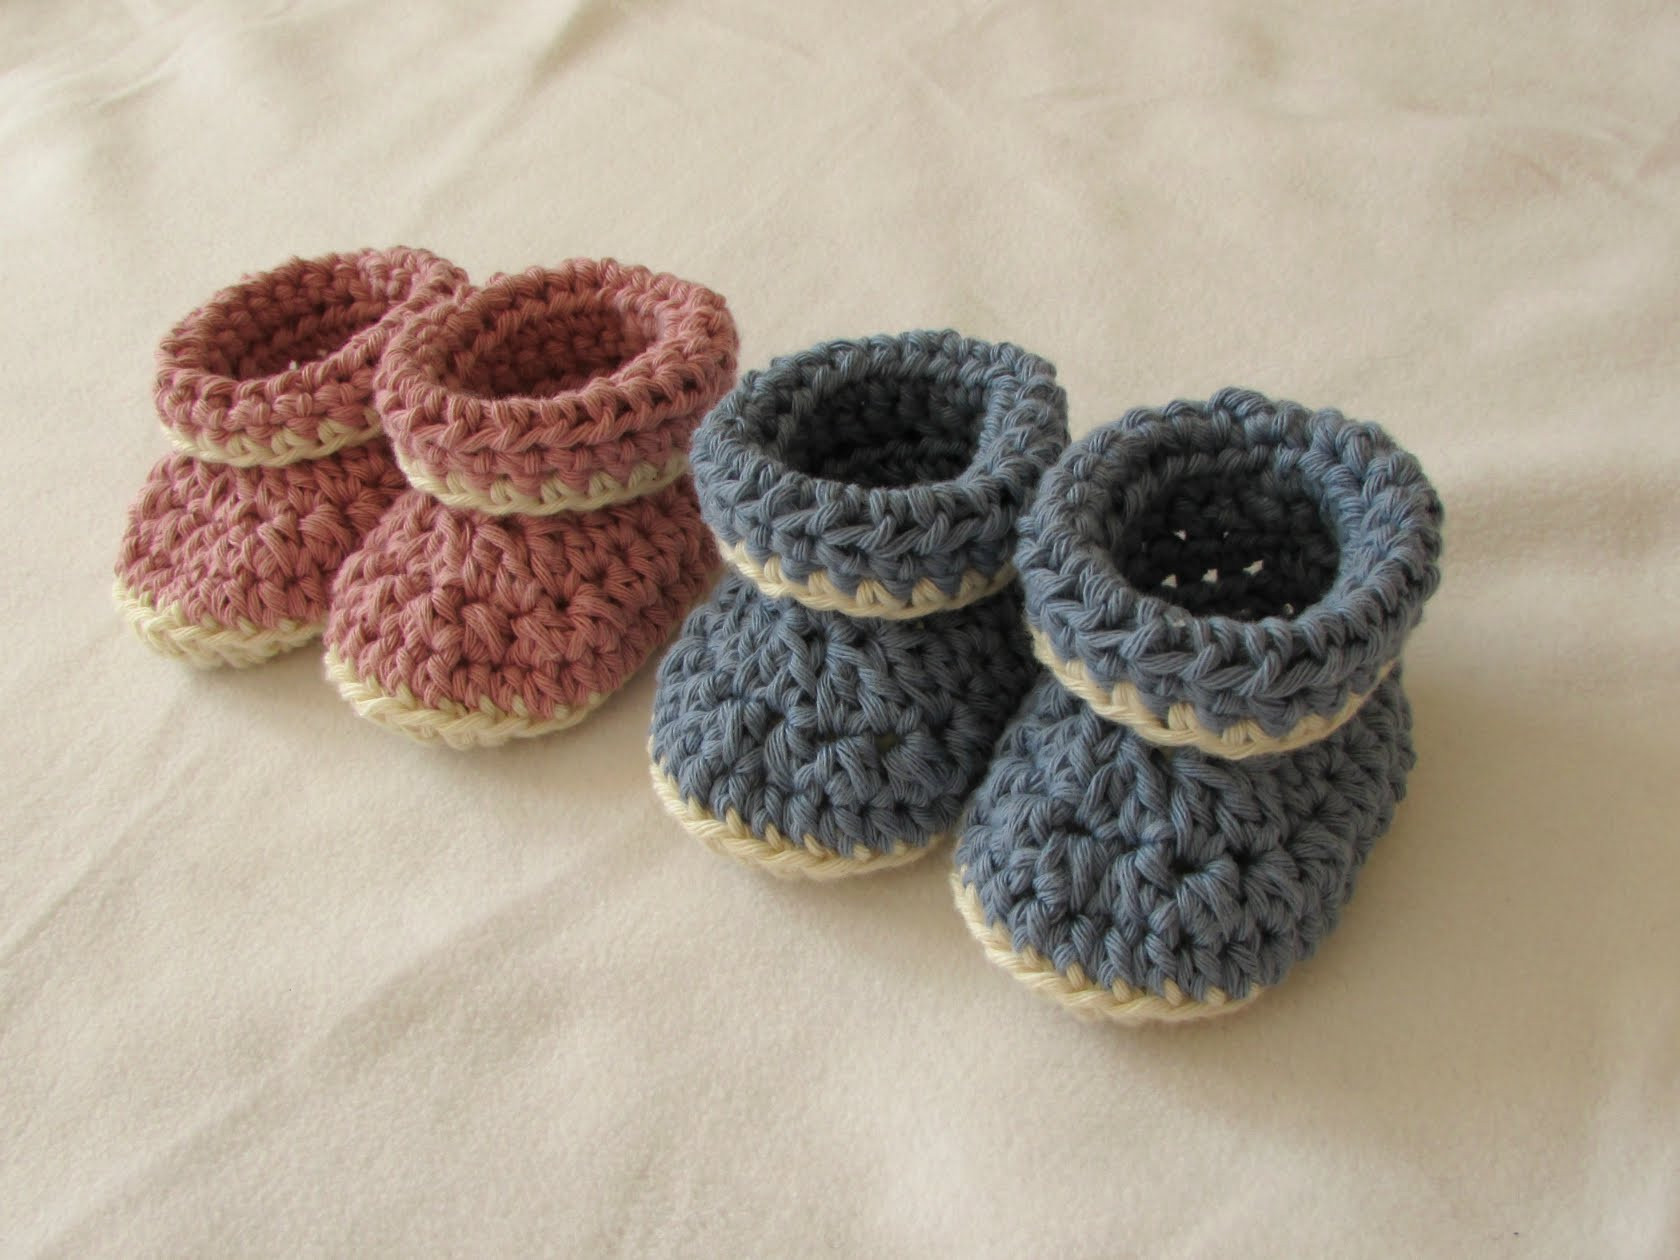 Free Crochet Baby Booties Luxury 36 Easy & Free Crochet Baby Booties Patterns for Your Angel Of Wonderful 49 Photos Free Crochet Baby Booties